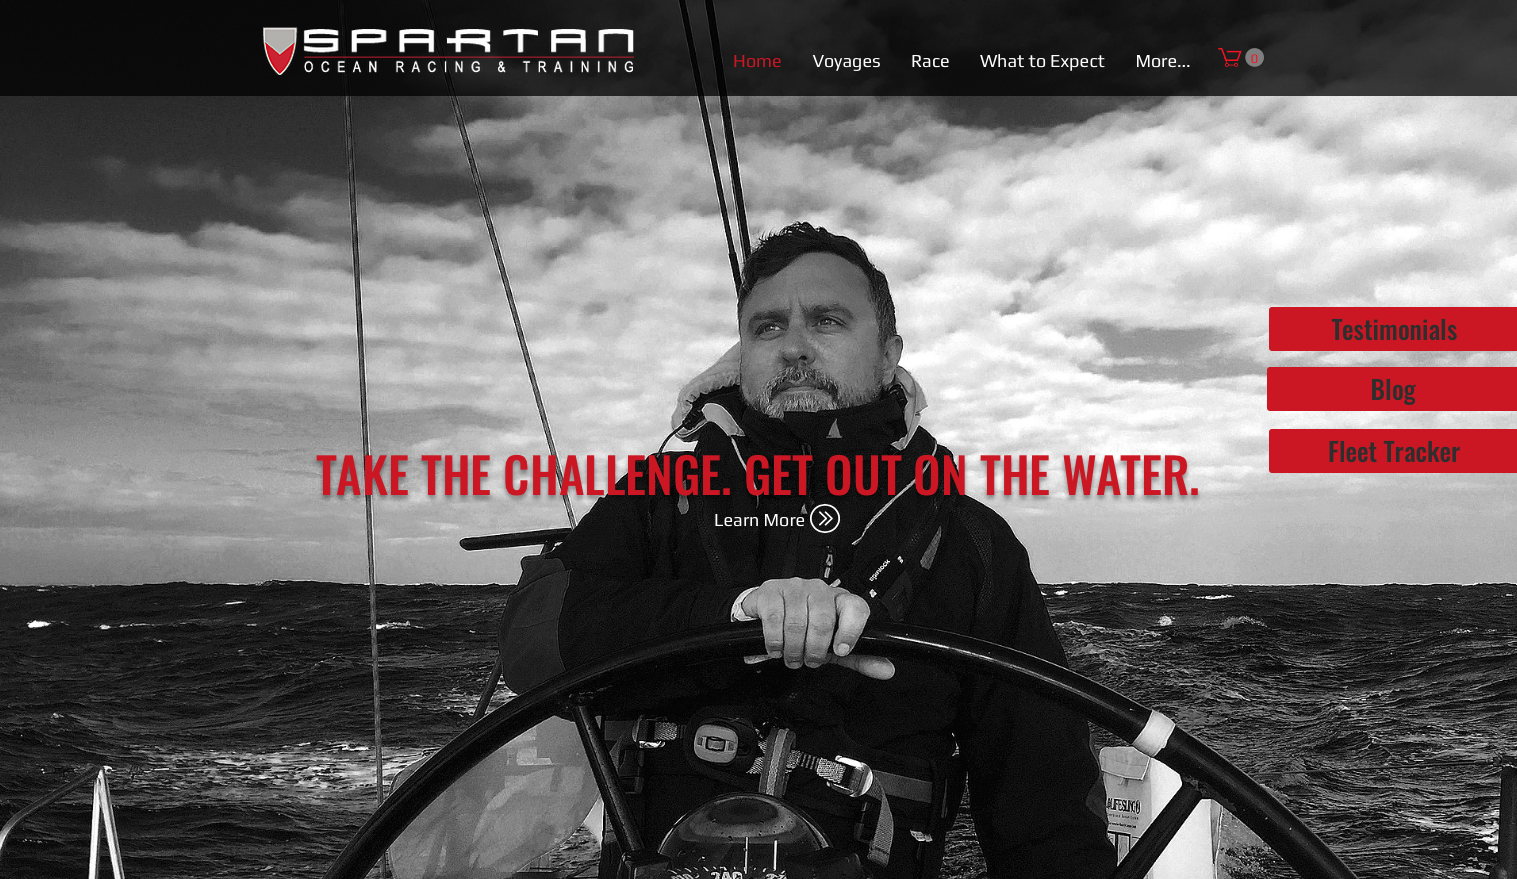 Spartan Website Redesign